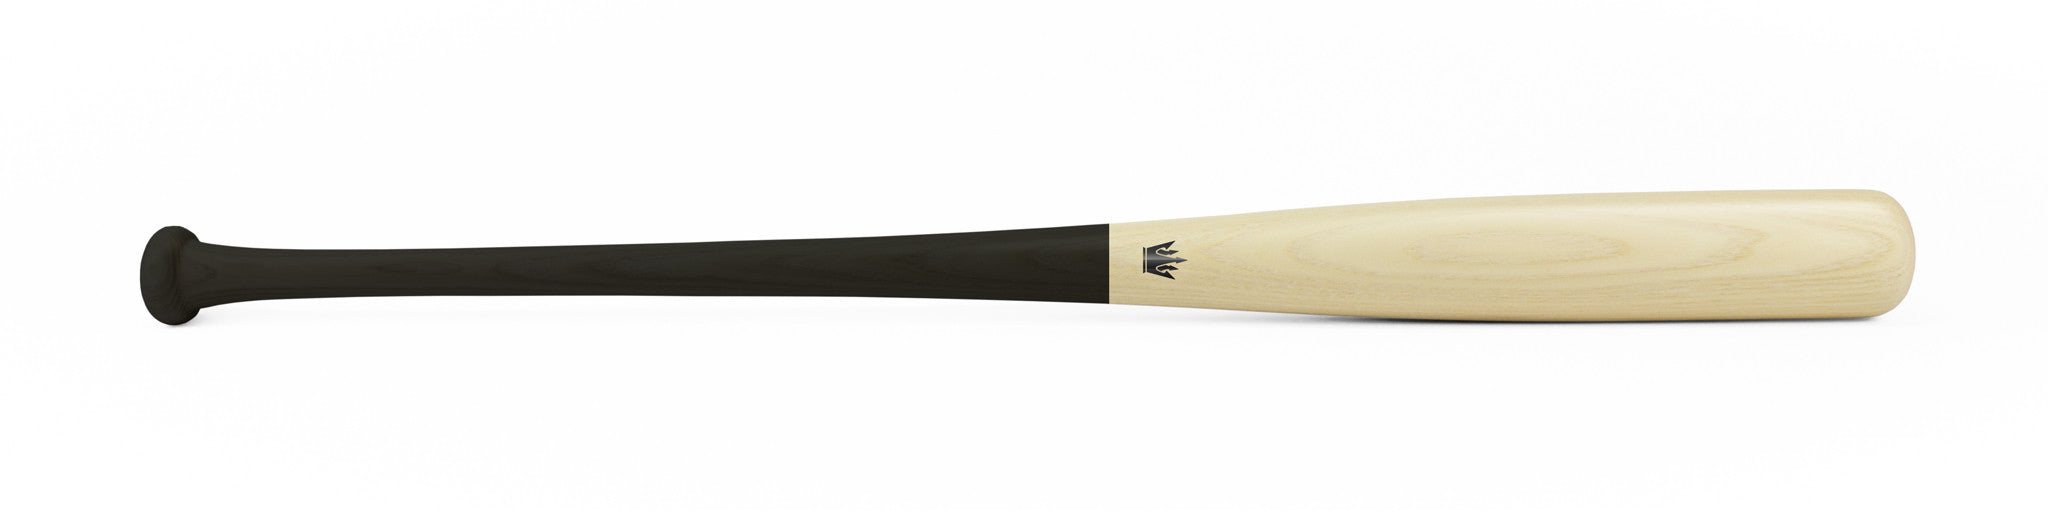 Wood bat - Ash model 318 Black Dip - 27